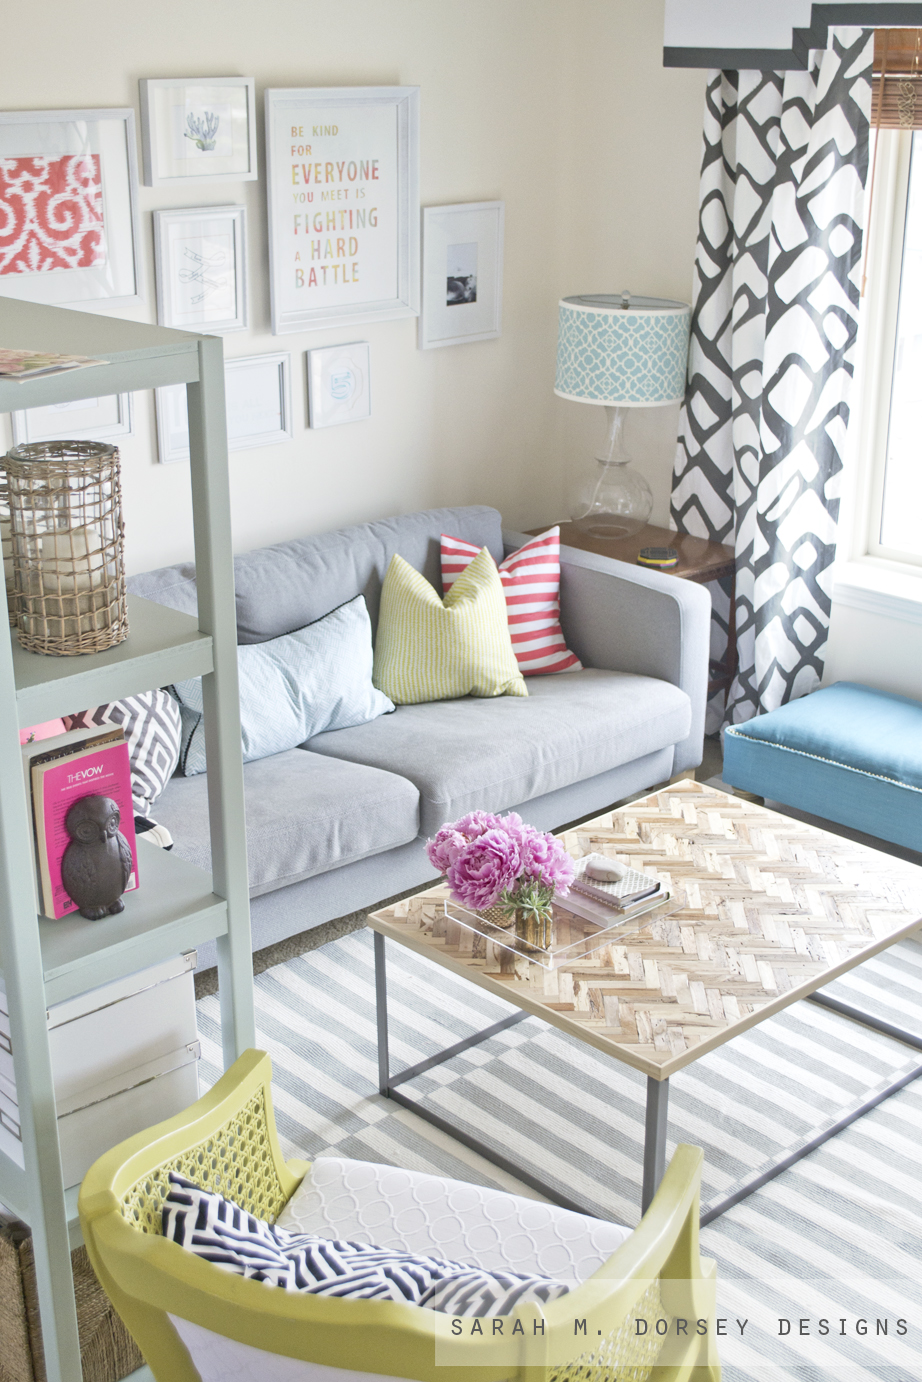 DIY Striped Painted Rug in about 2.5 Hours! - Dorsey Designs